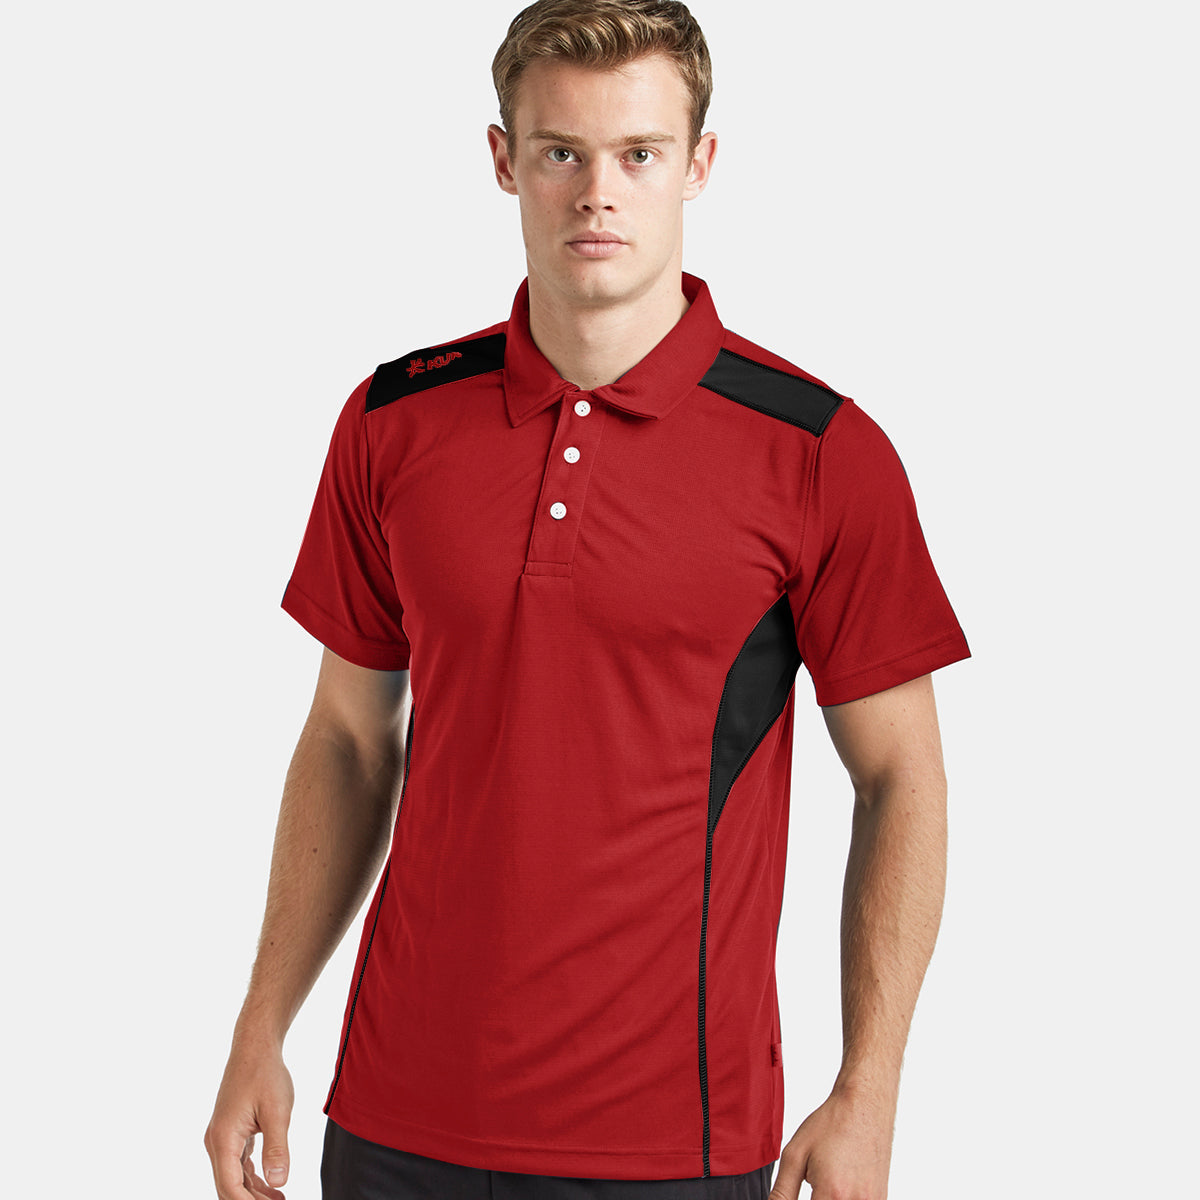 Kukri Half Sleeve Polo Shirt For Men-Red & Black-BE8130